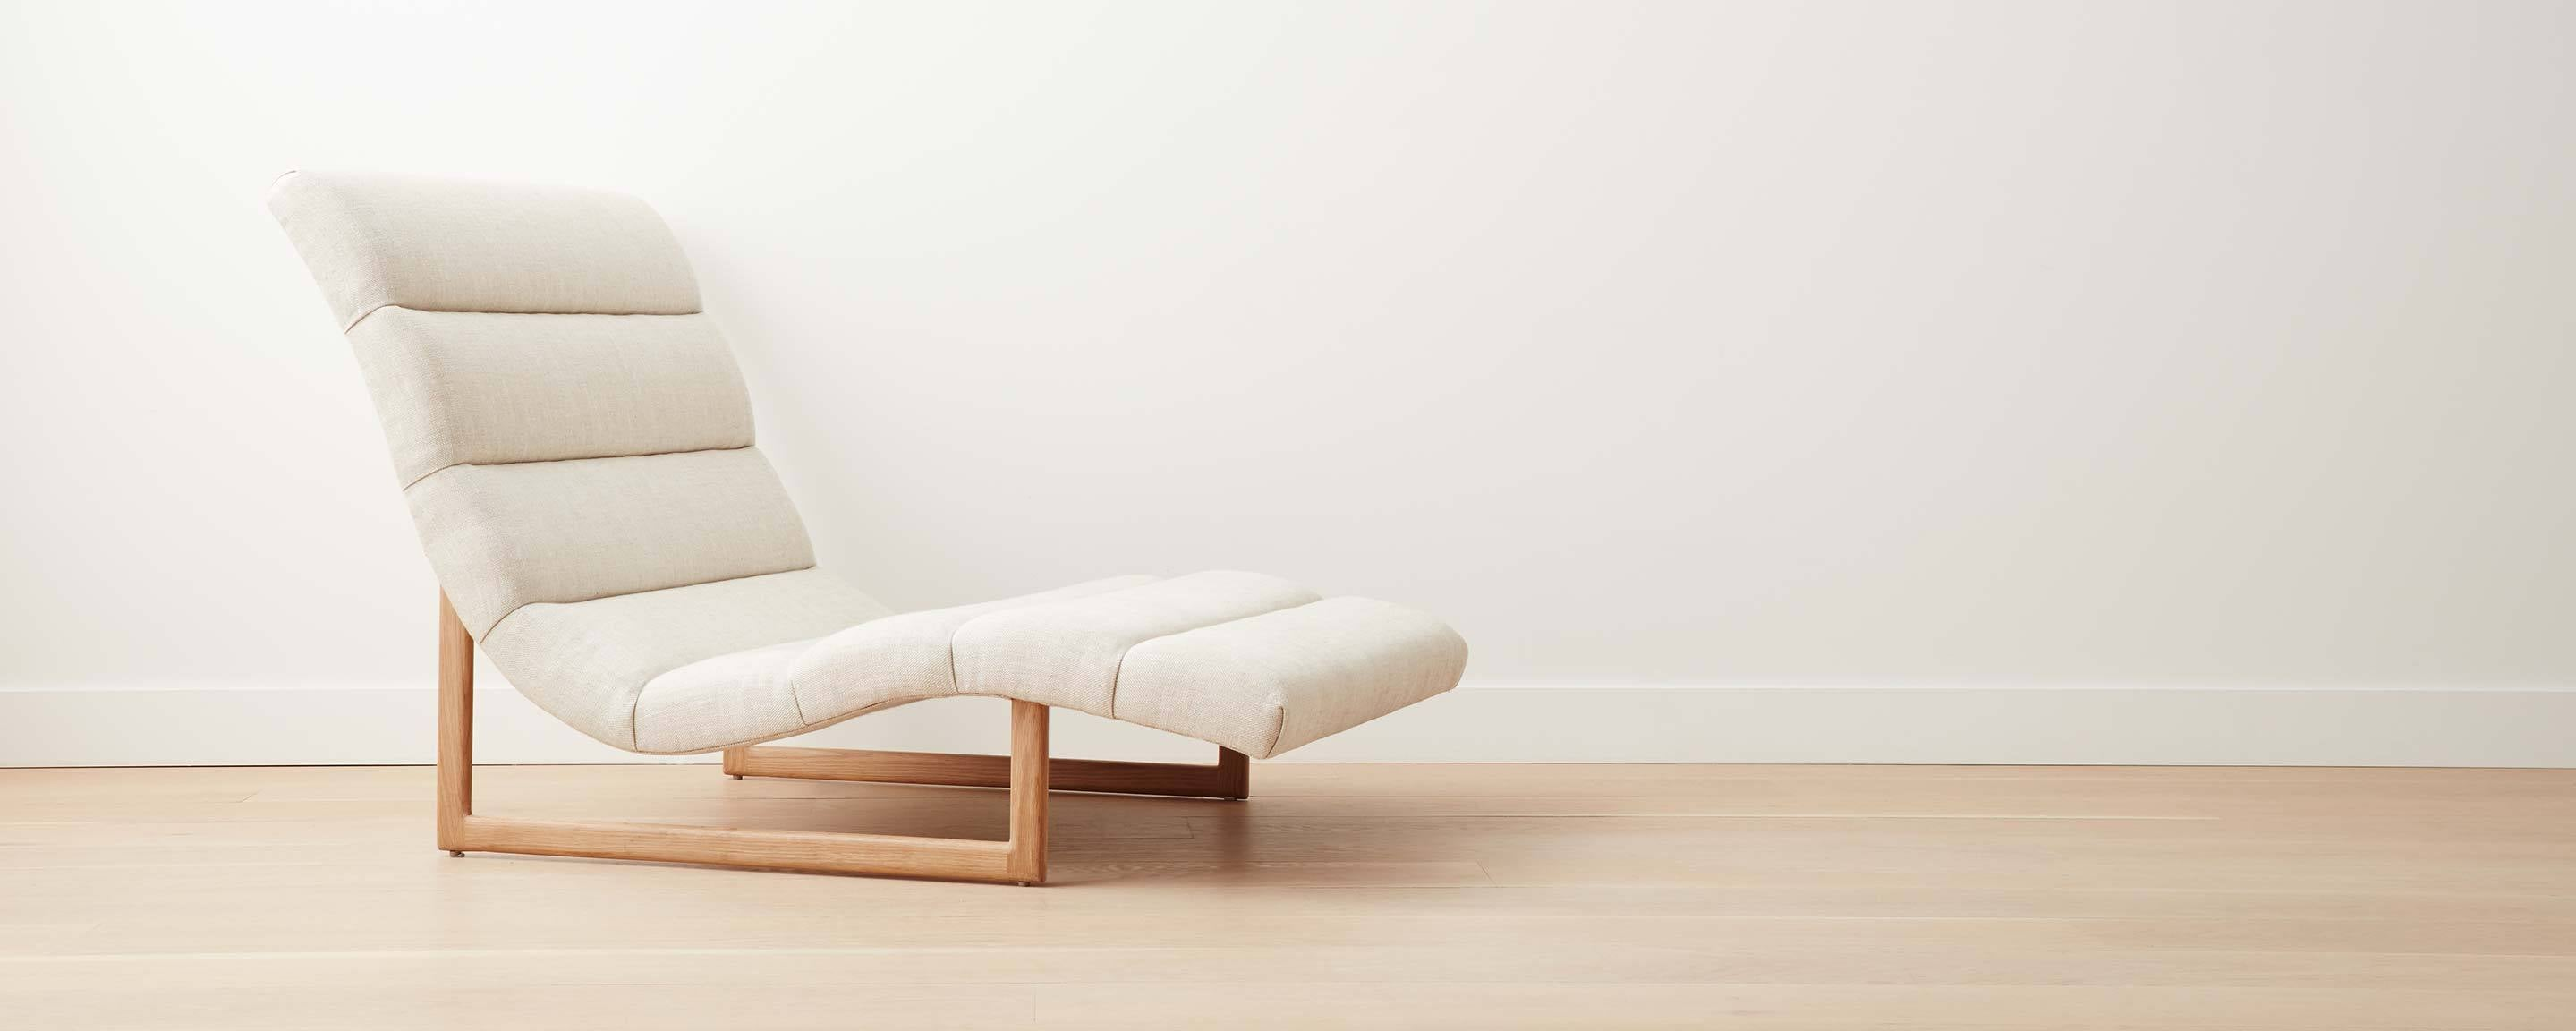 SPECS - the sag harbor chaise